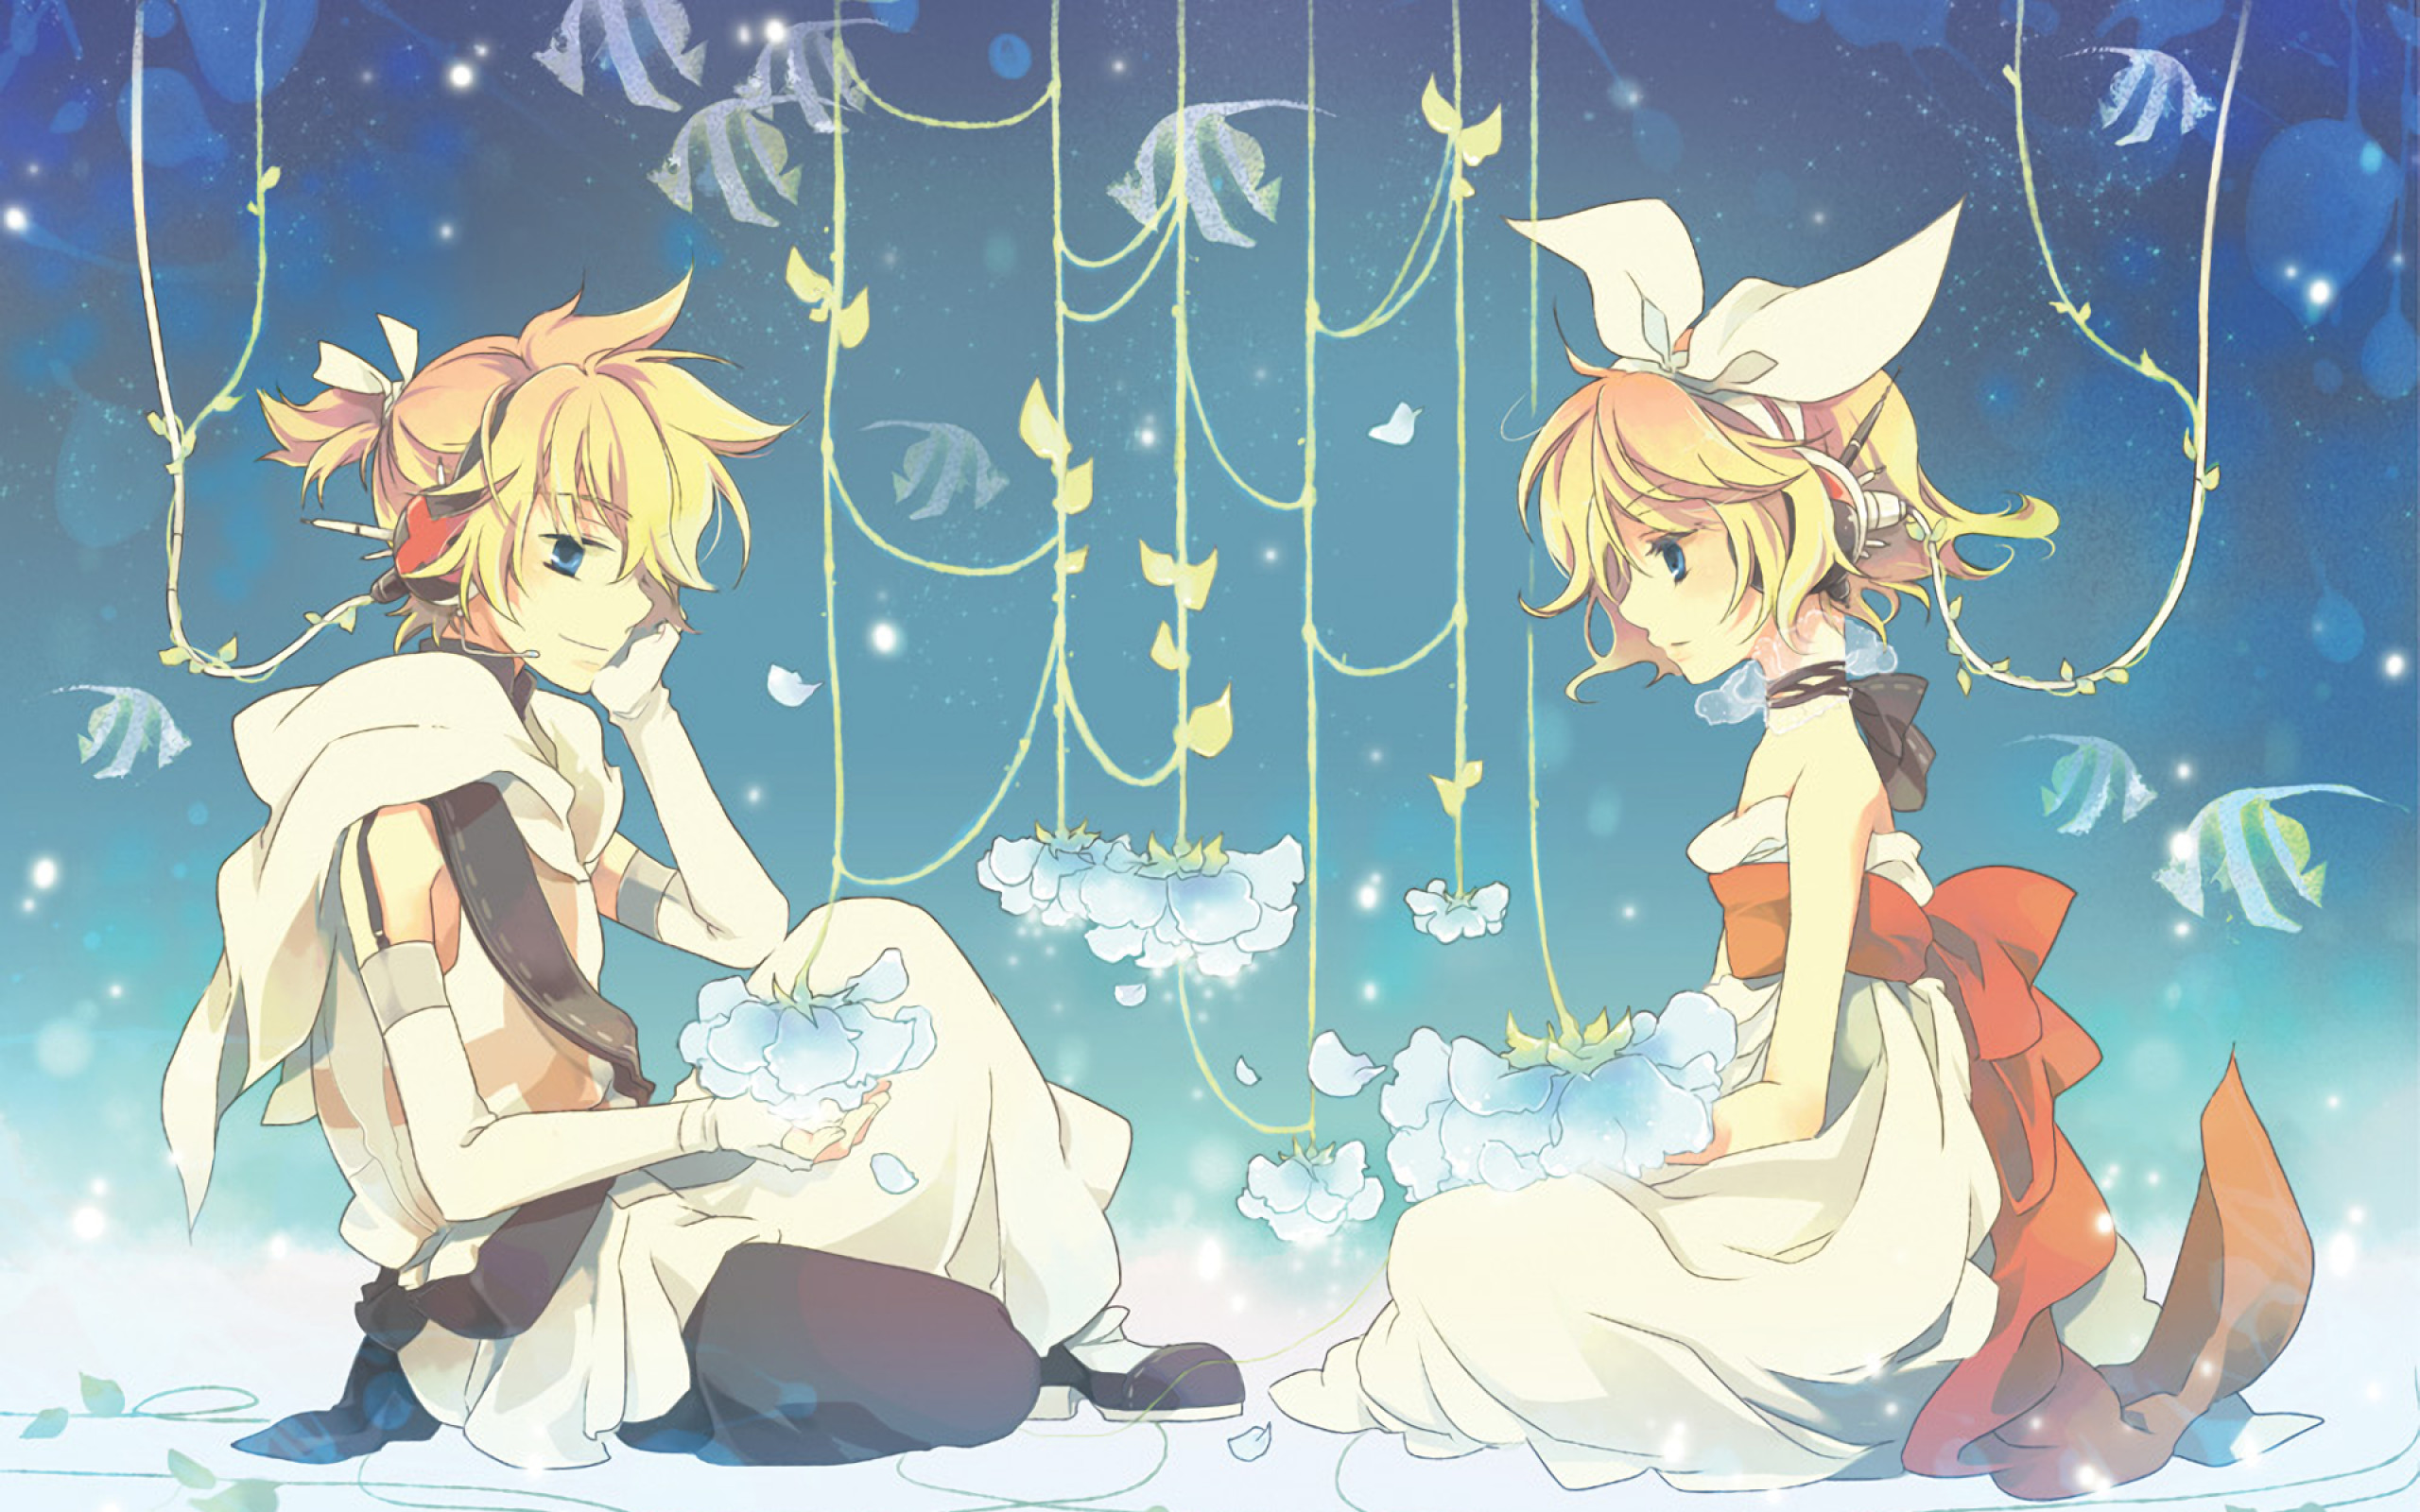 Res: 2560x1600, Kagamine Rin, Kagamine Len, Vocaloid, Blonde, Dress, Ribbons